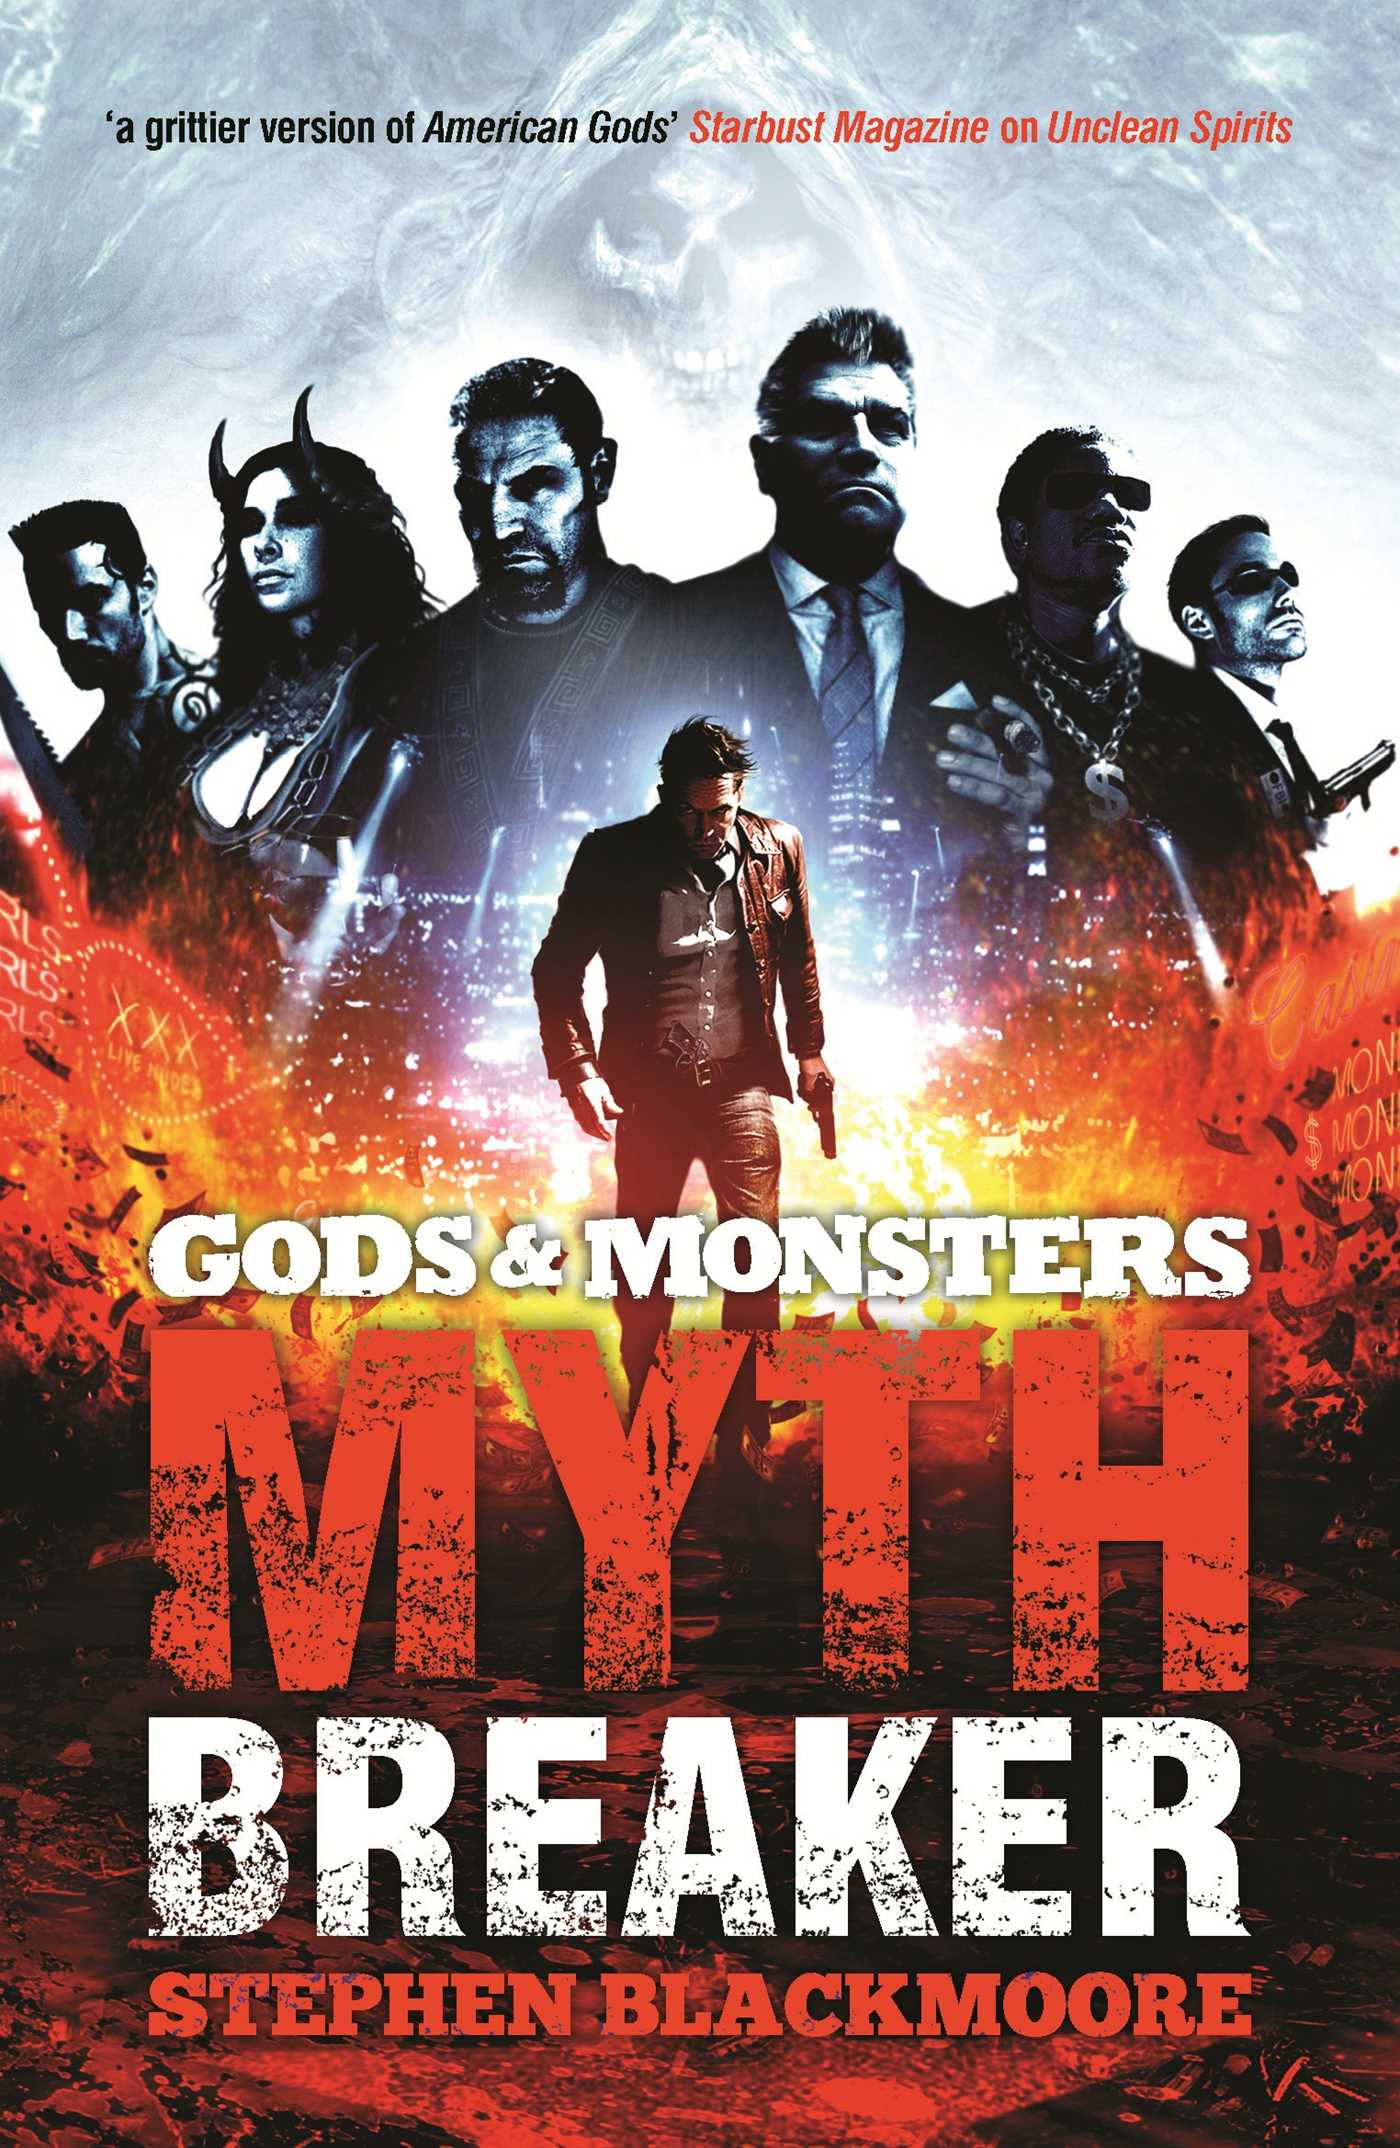 Gods-and-monsters-mythbreaker-9781781082553_hr